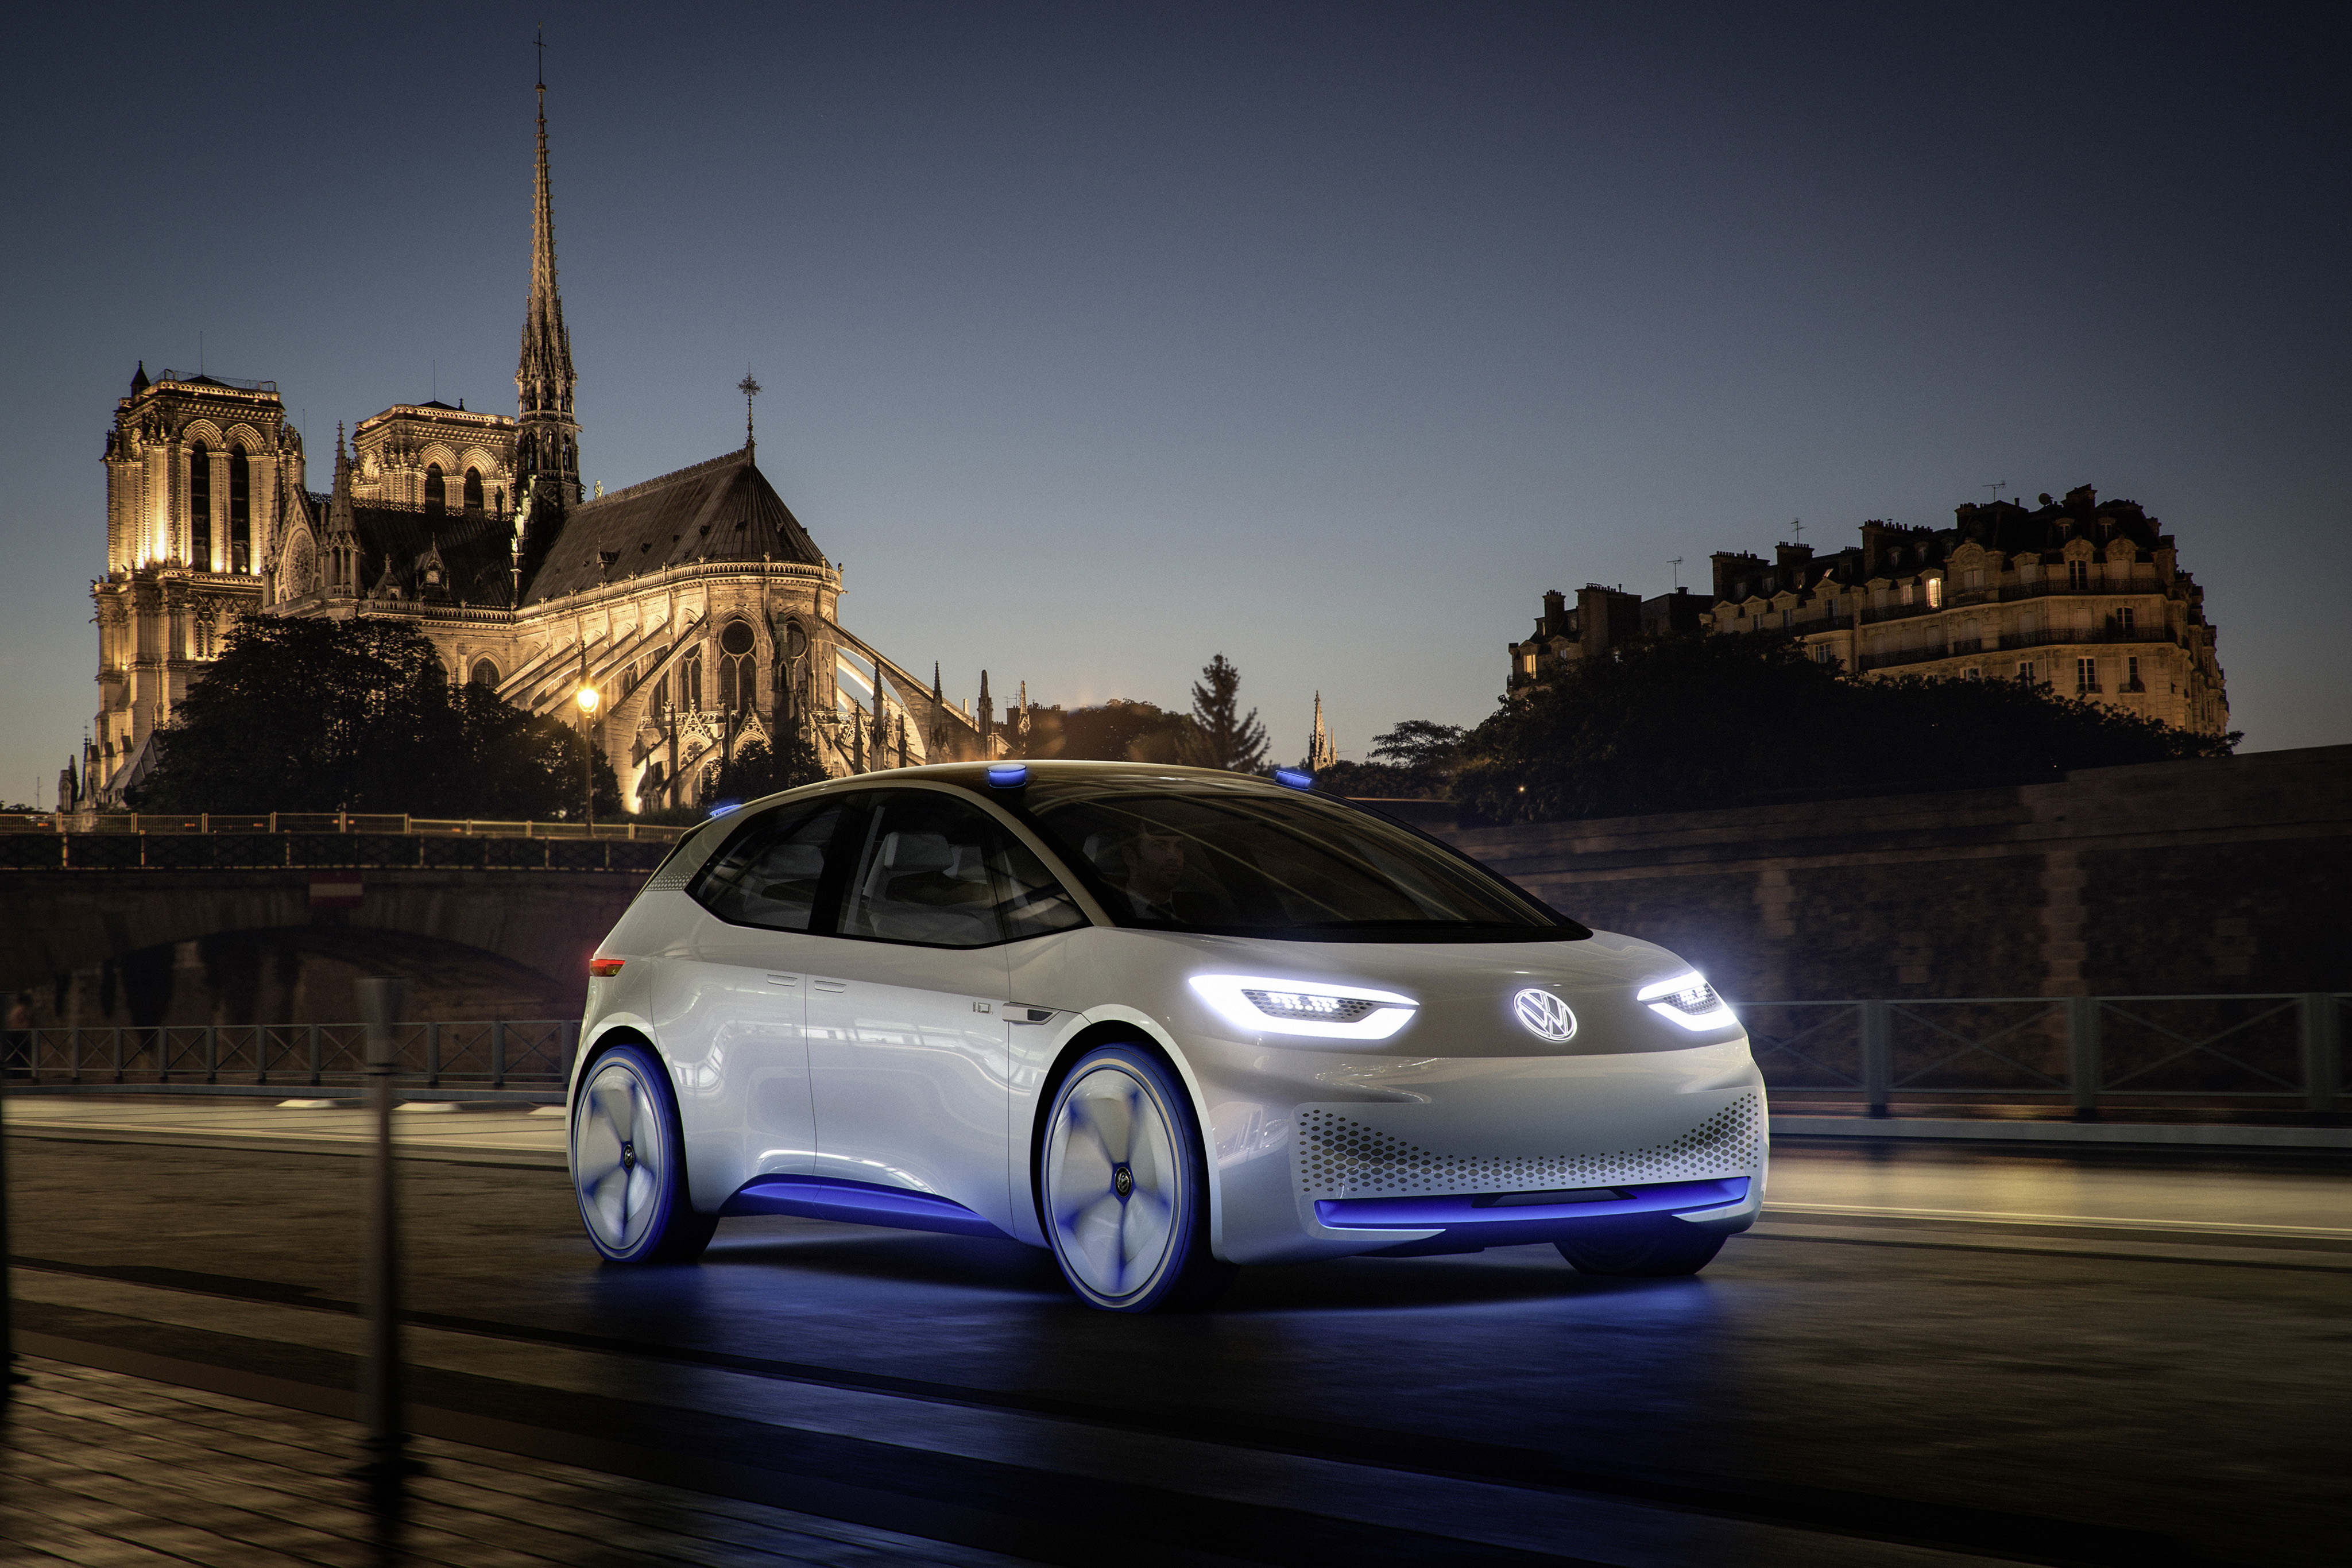 Volkswagen ID. concept previews new electric vehicle – 600 km range, on sale in 2020, autonomous in 2025 Image #557208